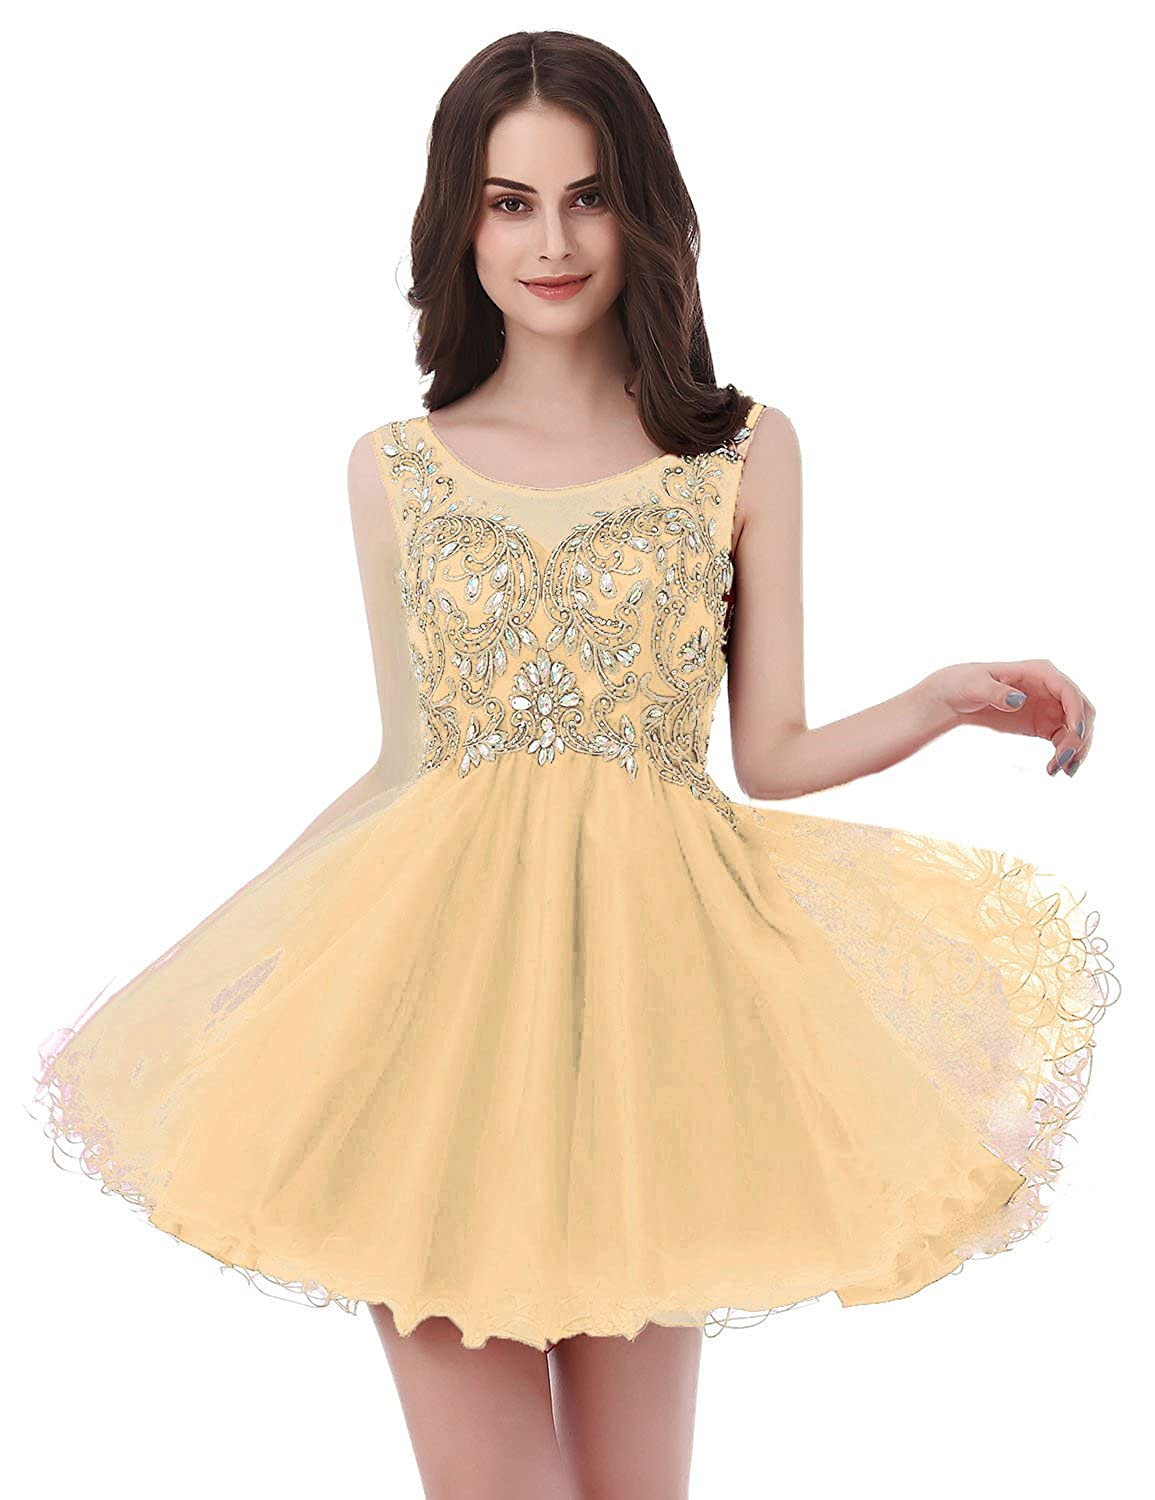 142champagne Sarahbridal Women's Short Tulle Beading Homecoming Dresses 2019 Prom Party Gowns